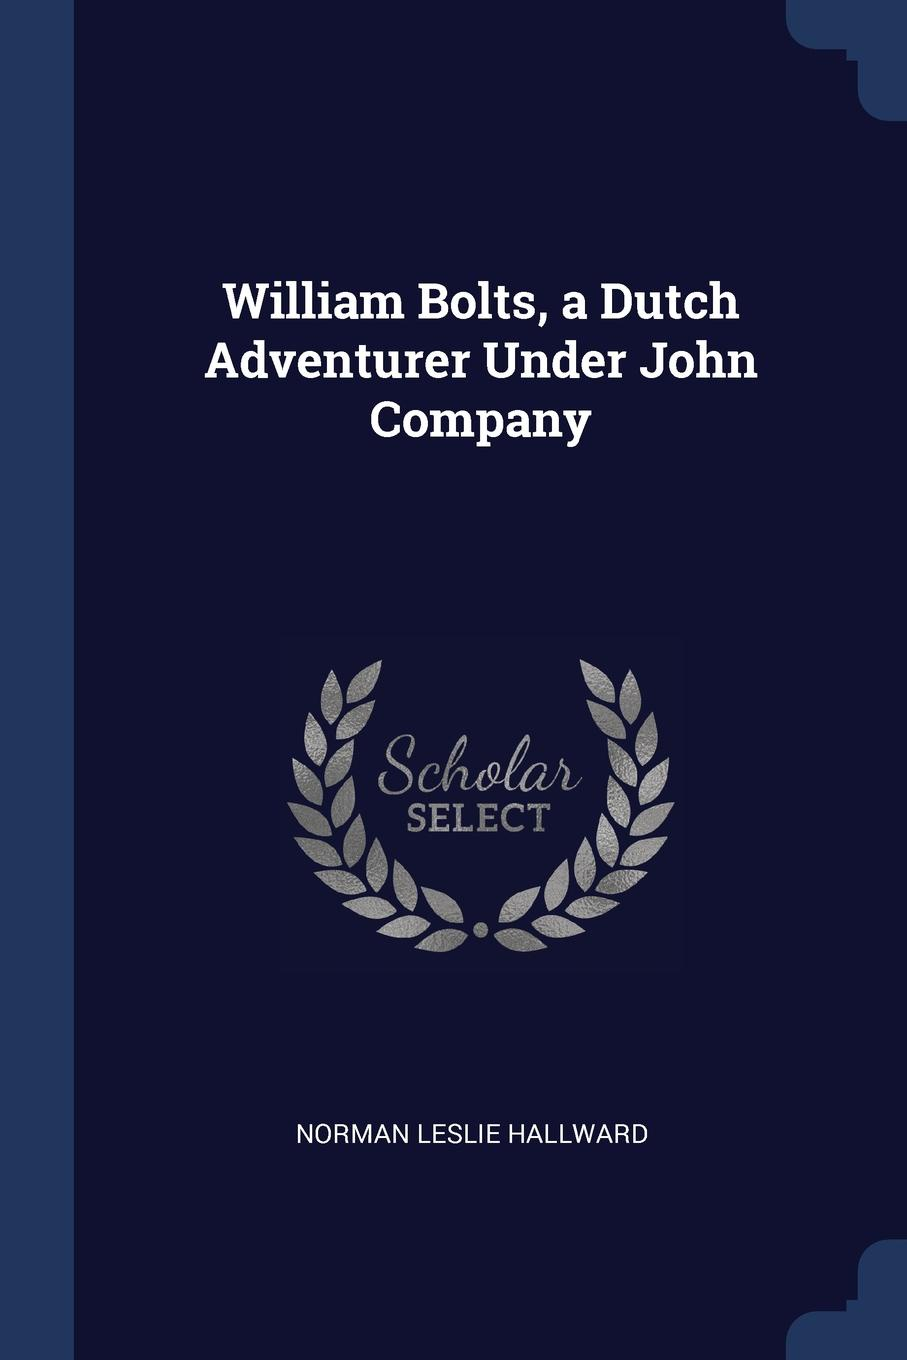 William Bolts, a Dutch Adventurer Under John Company. Norman Leslie Hallward